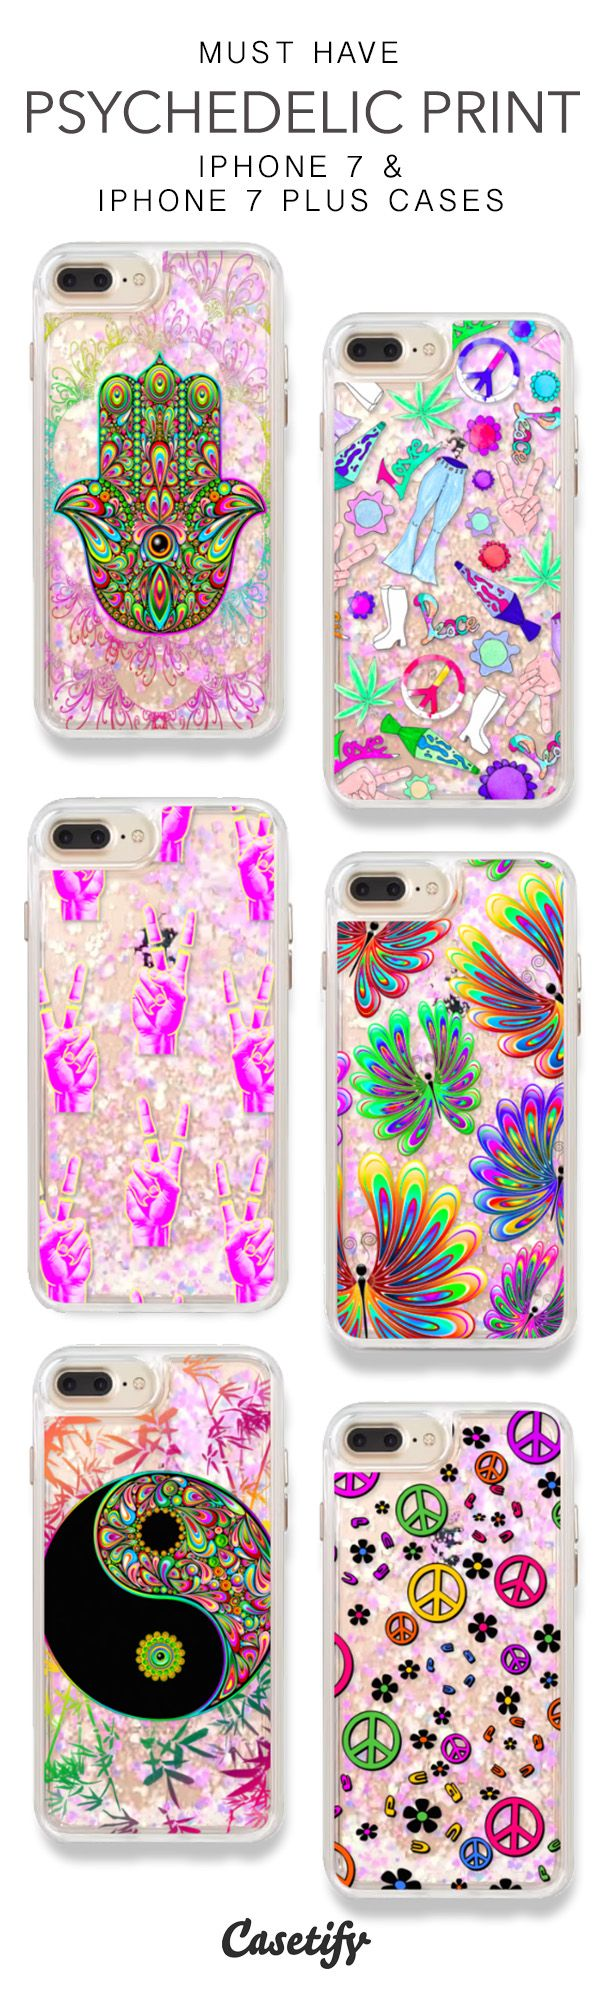 Must Have Psychedelic Print iPhone 7 Cases & iPhone 7 Plus Cases. More Protective Liquid Glitter Groovy 70s iPhone case here > https://www.casetify.com/en_US/collections/iphone-7-glitter-cases#/?vc=cYCf3LLLPW